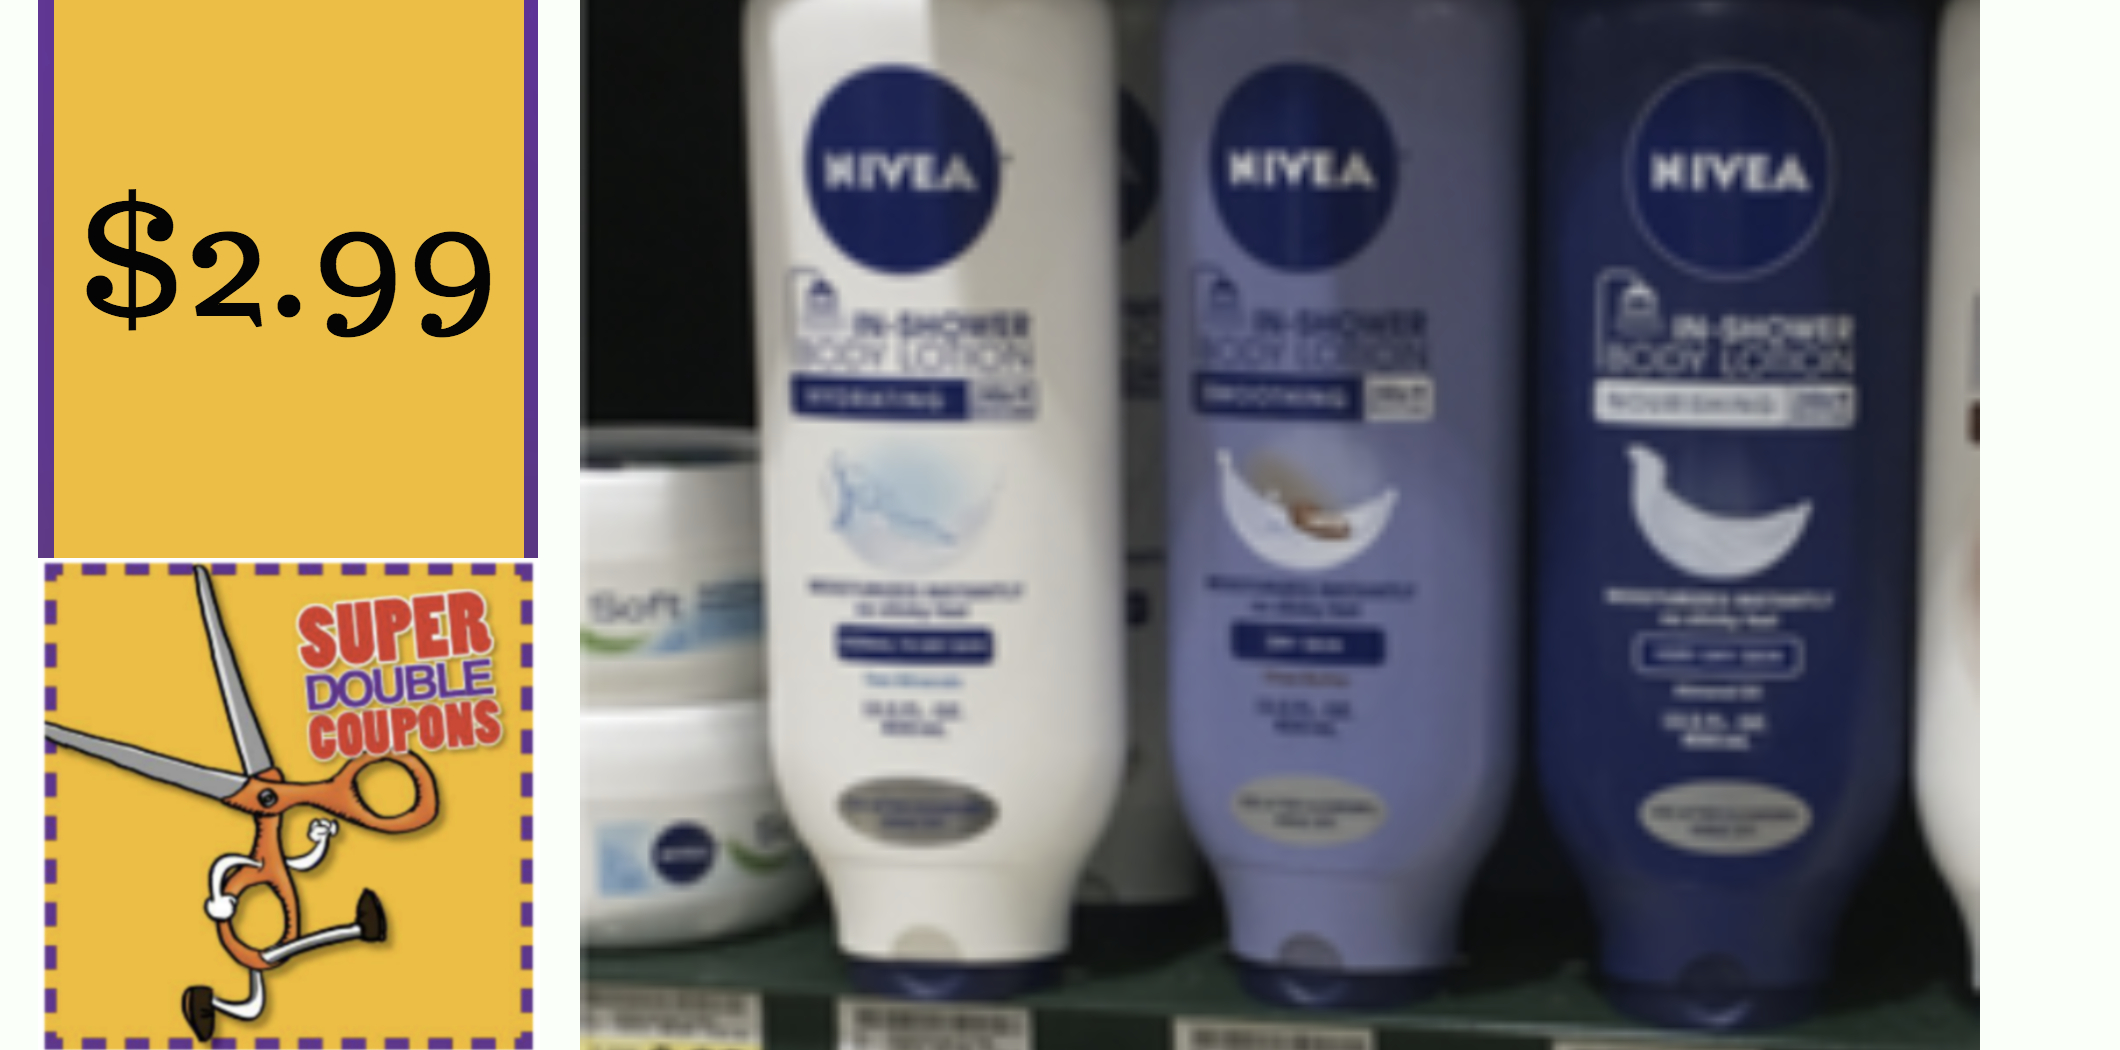 New Nivea In Shower Lotion Coupon + Super Doubles Deal - Moola - Free Printable Nivea Coupons